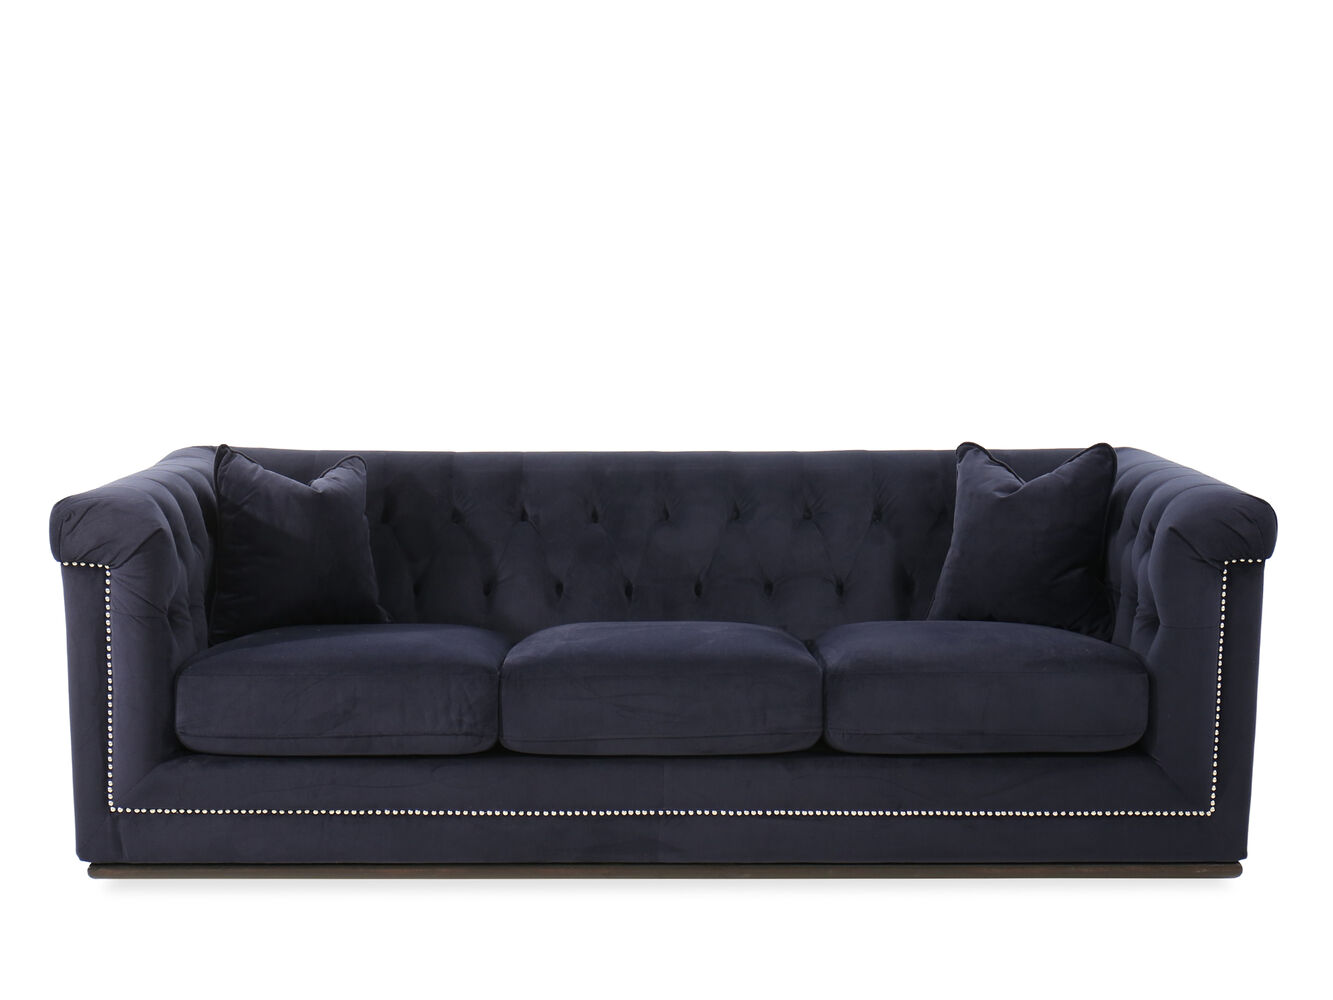 Button tufted velvet 93 sofa in blue mathis brothers for Button tufted chaise settee velvet